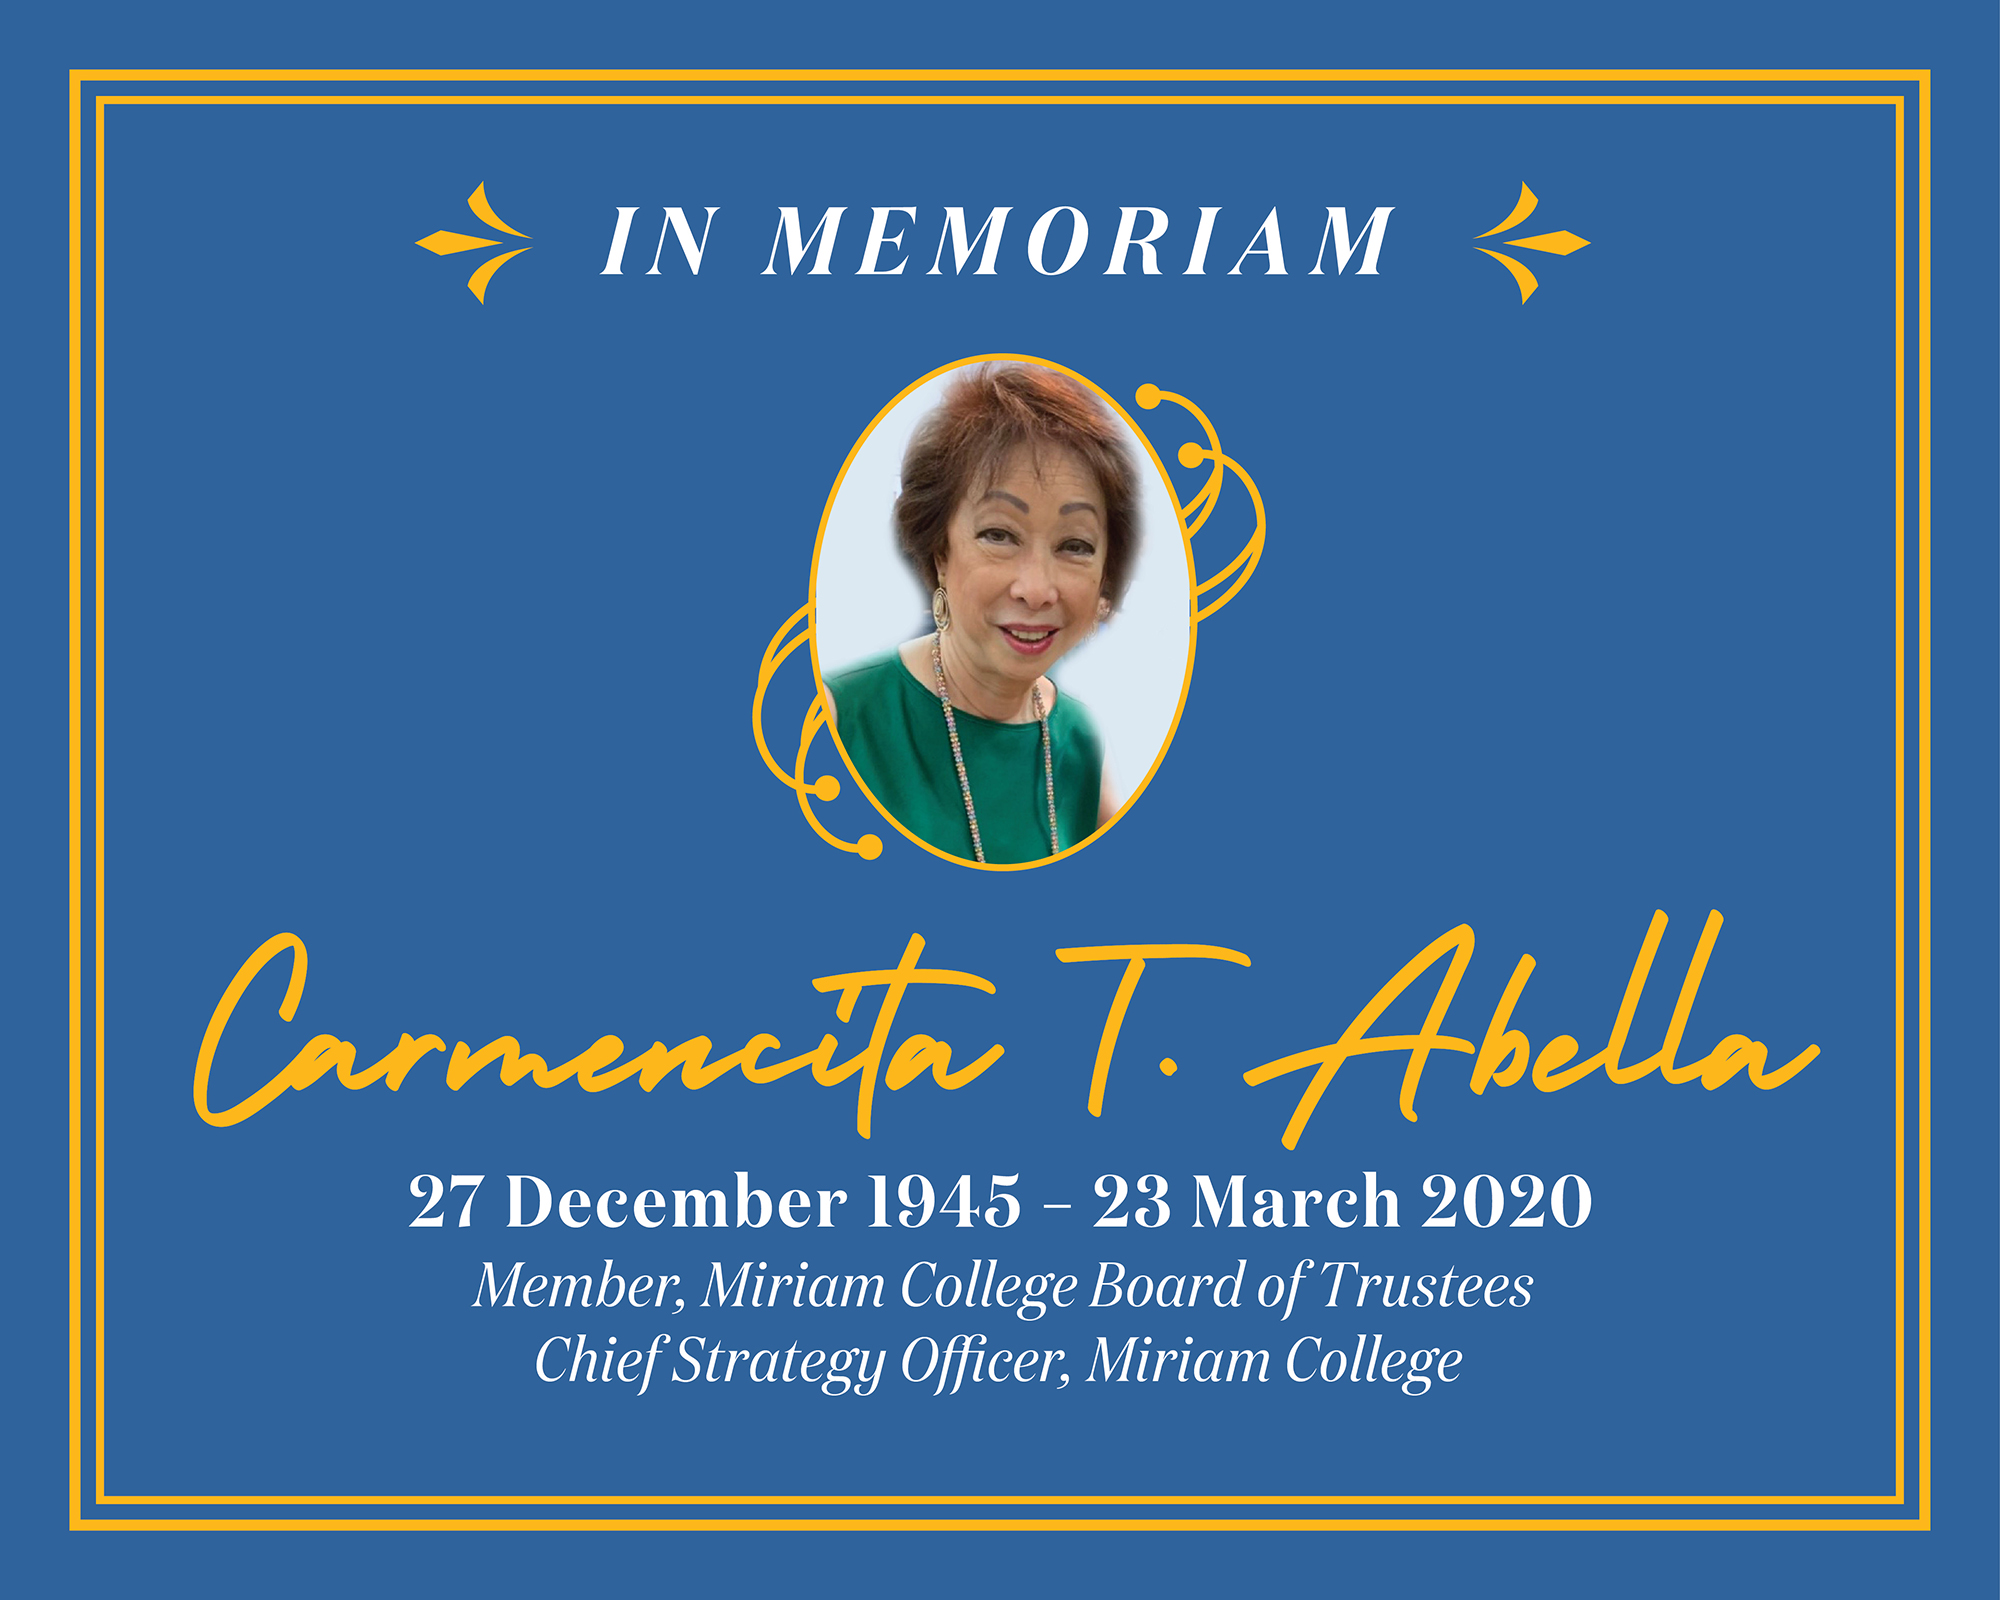 In Memoriam of our Board of Trustee and Chief Strategy Officer Carn Abella